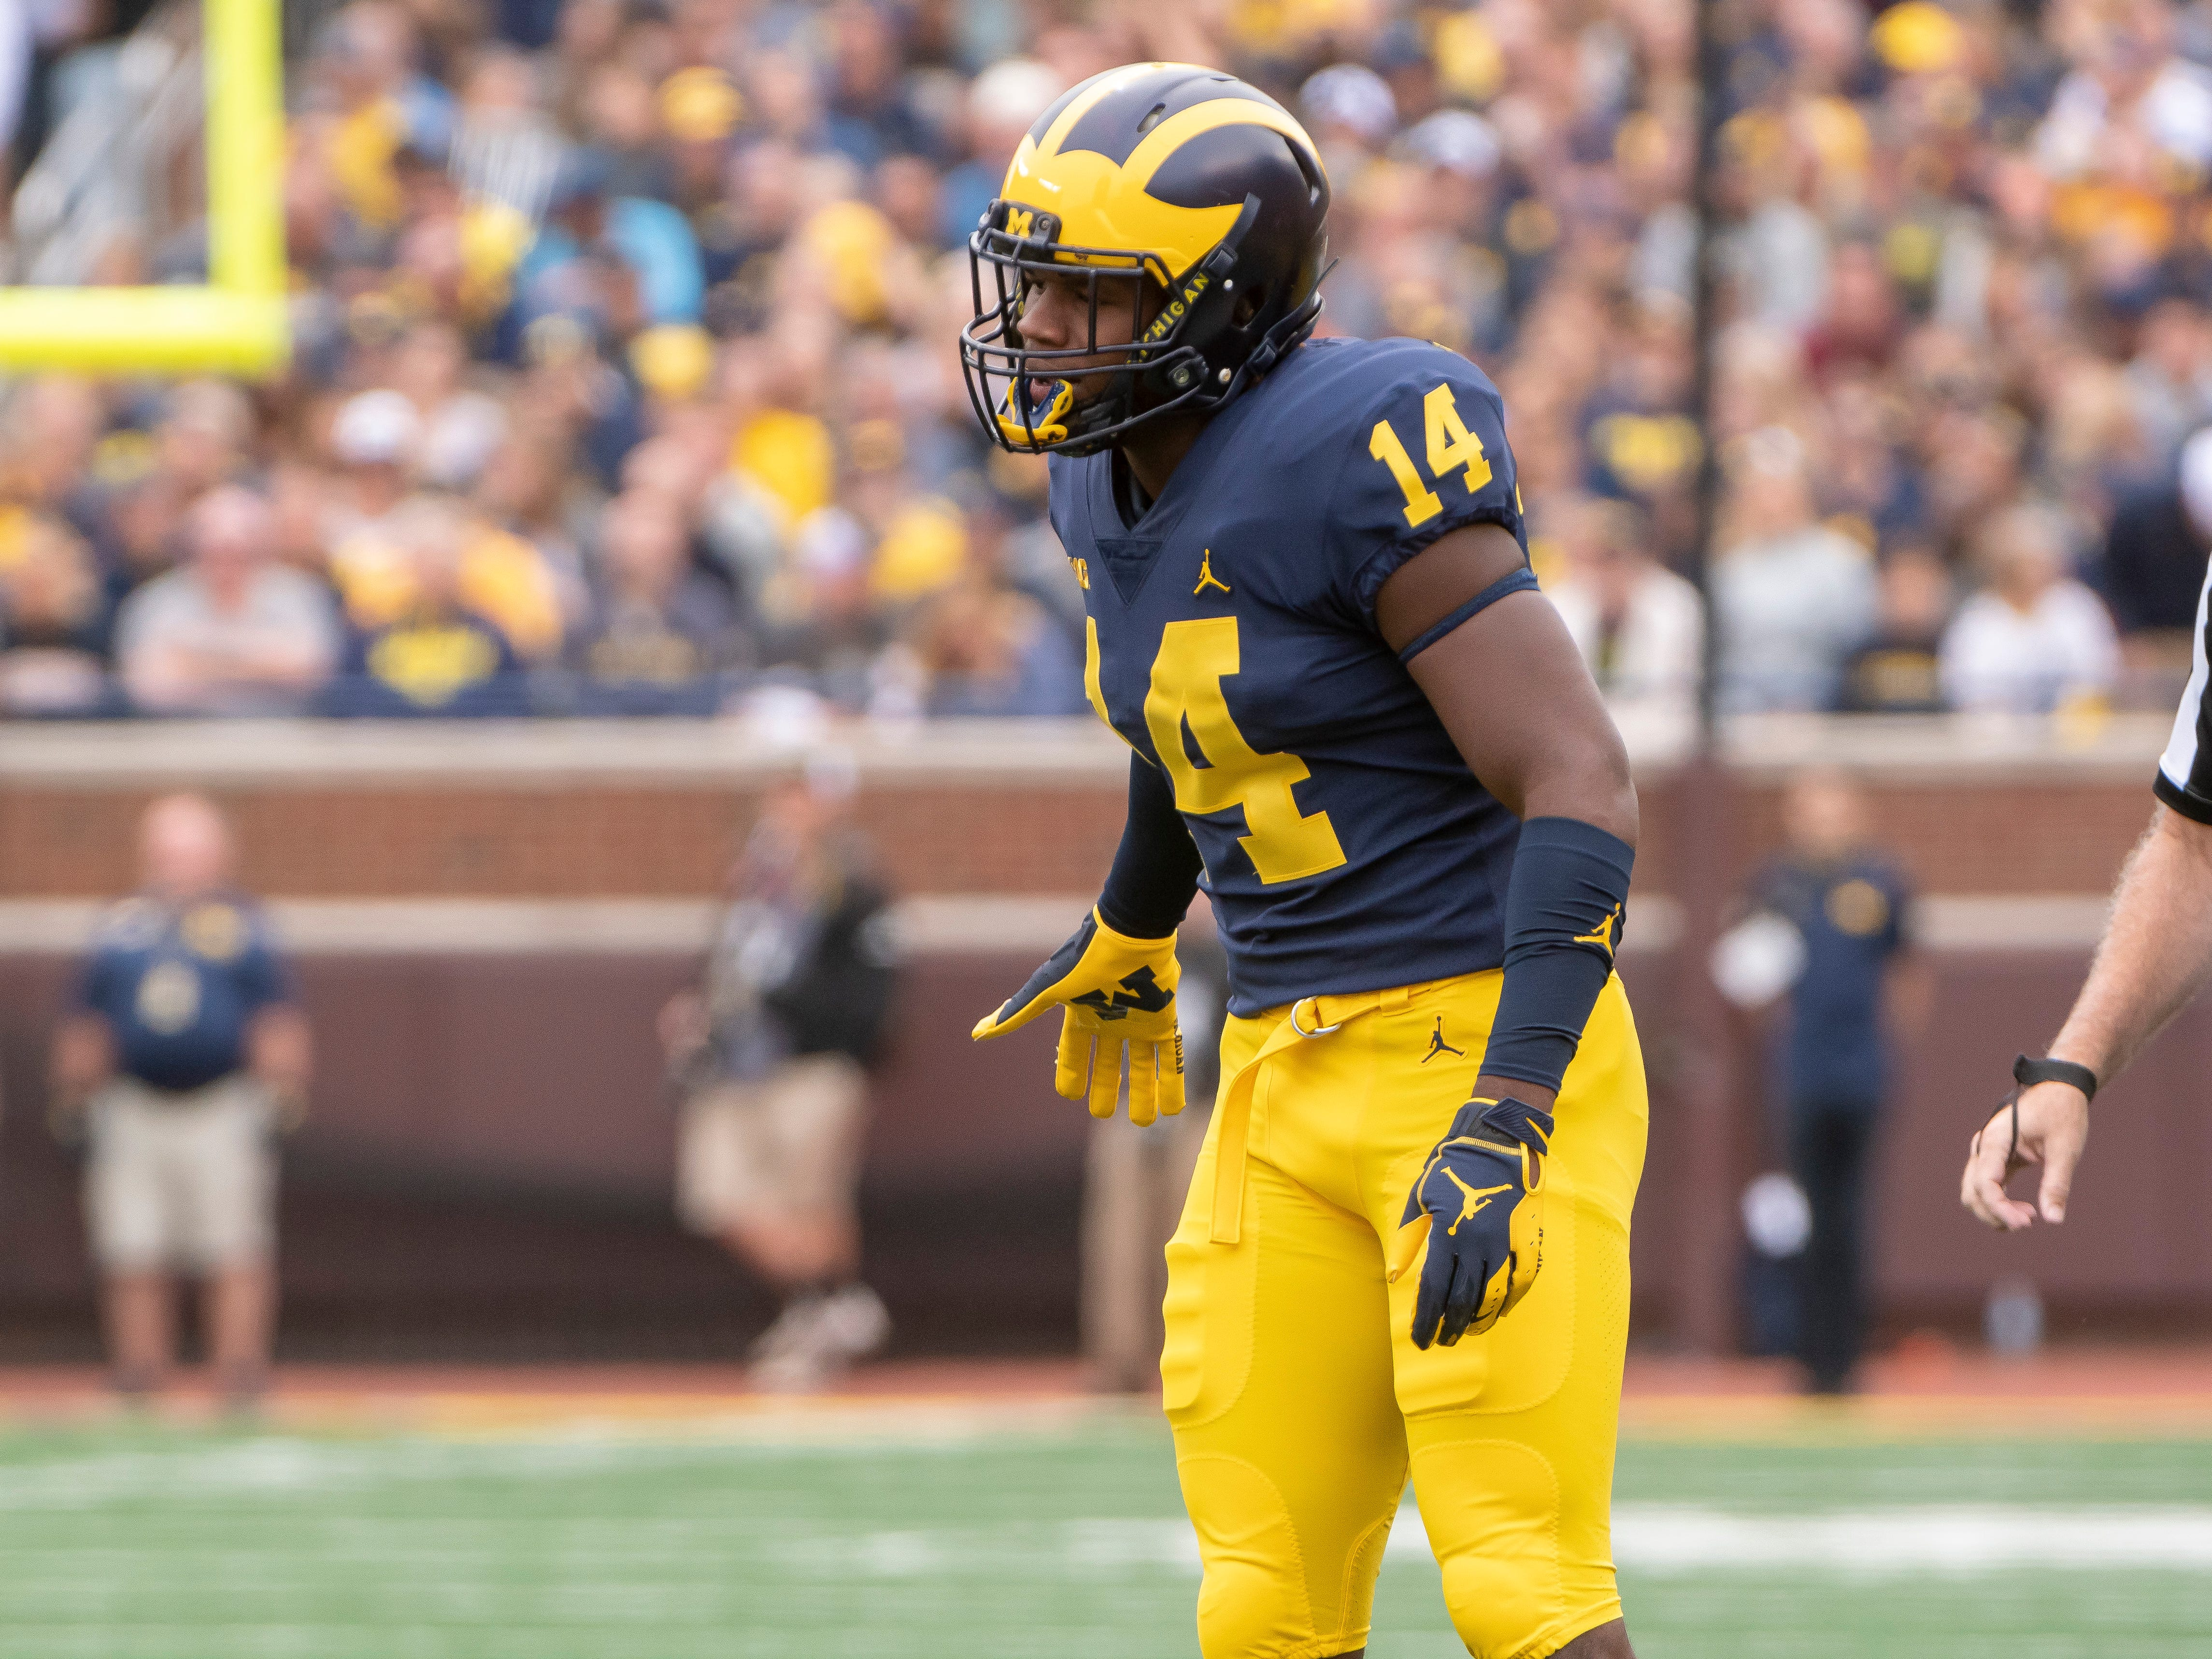 STRONG SAFETY: Josh Metellus – Last season Metellus was AP All-Big Ten first team and second team All-Big Ten. He has made 25 career starts, including 24 at safety. He had 48 tackles, three interceptions and six pass breakups.